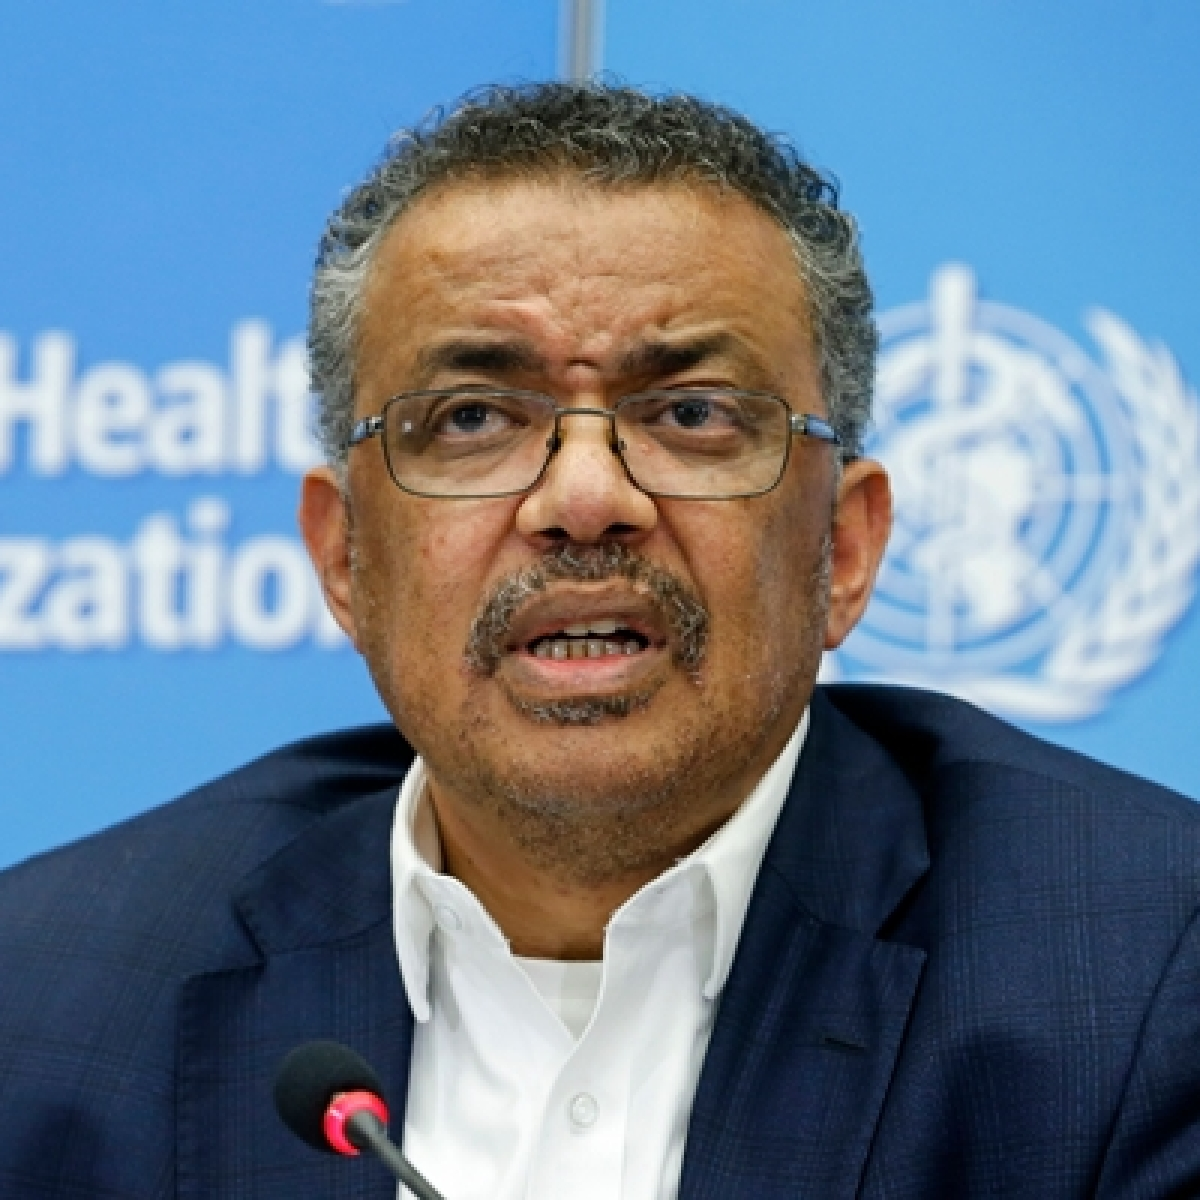 Love, Unity, Humanity: Who is handling WHO chief Tedros' account?